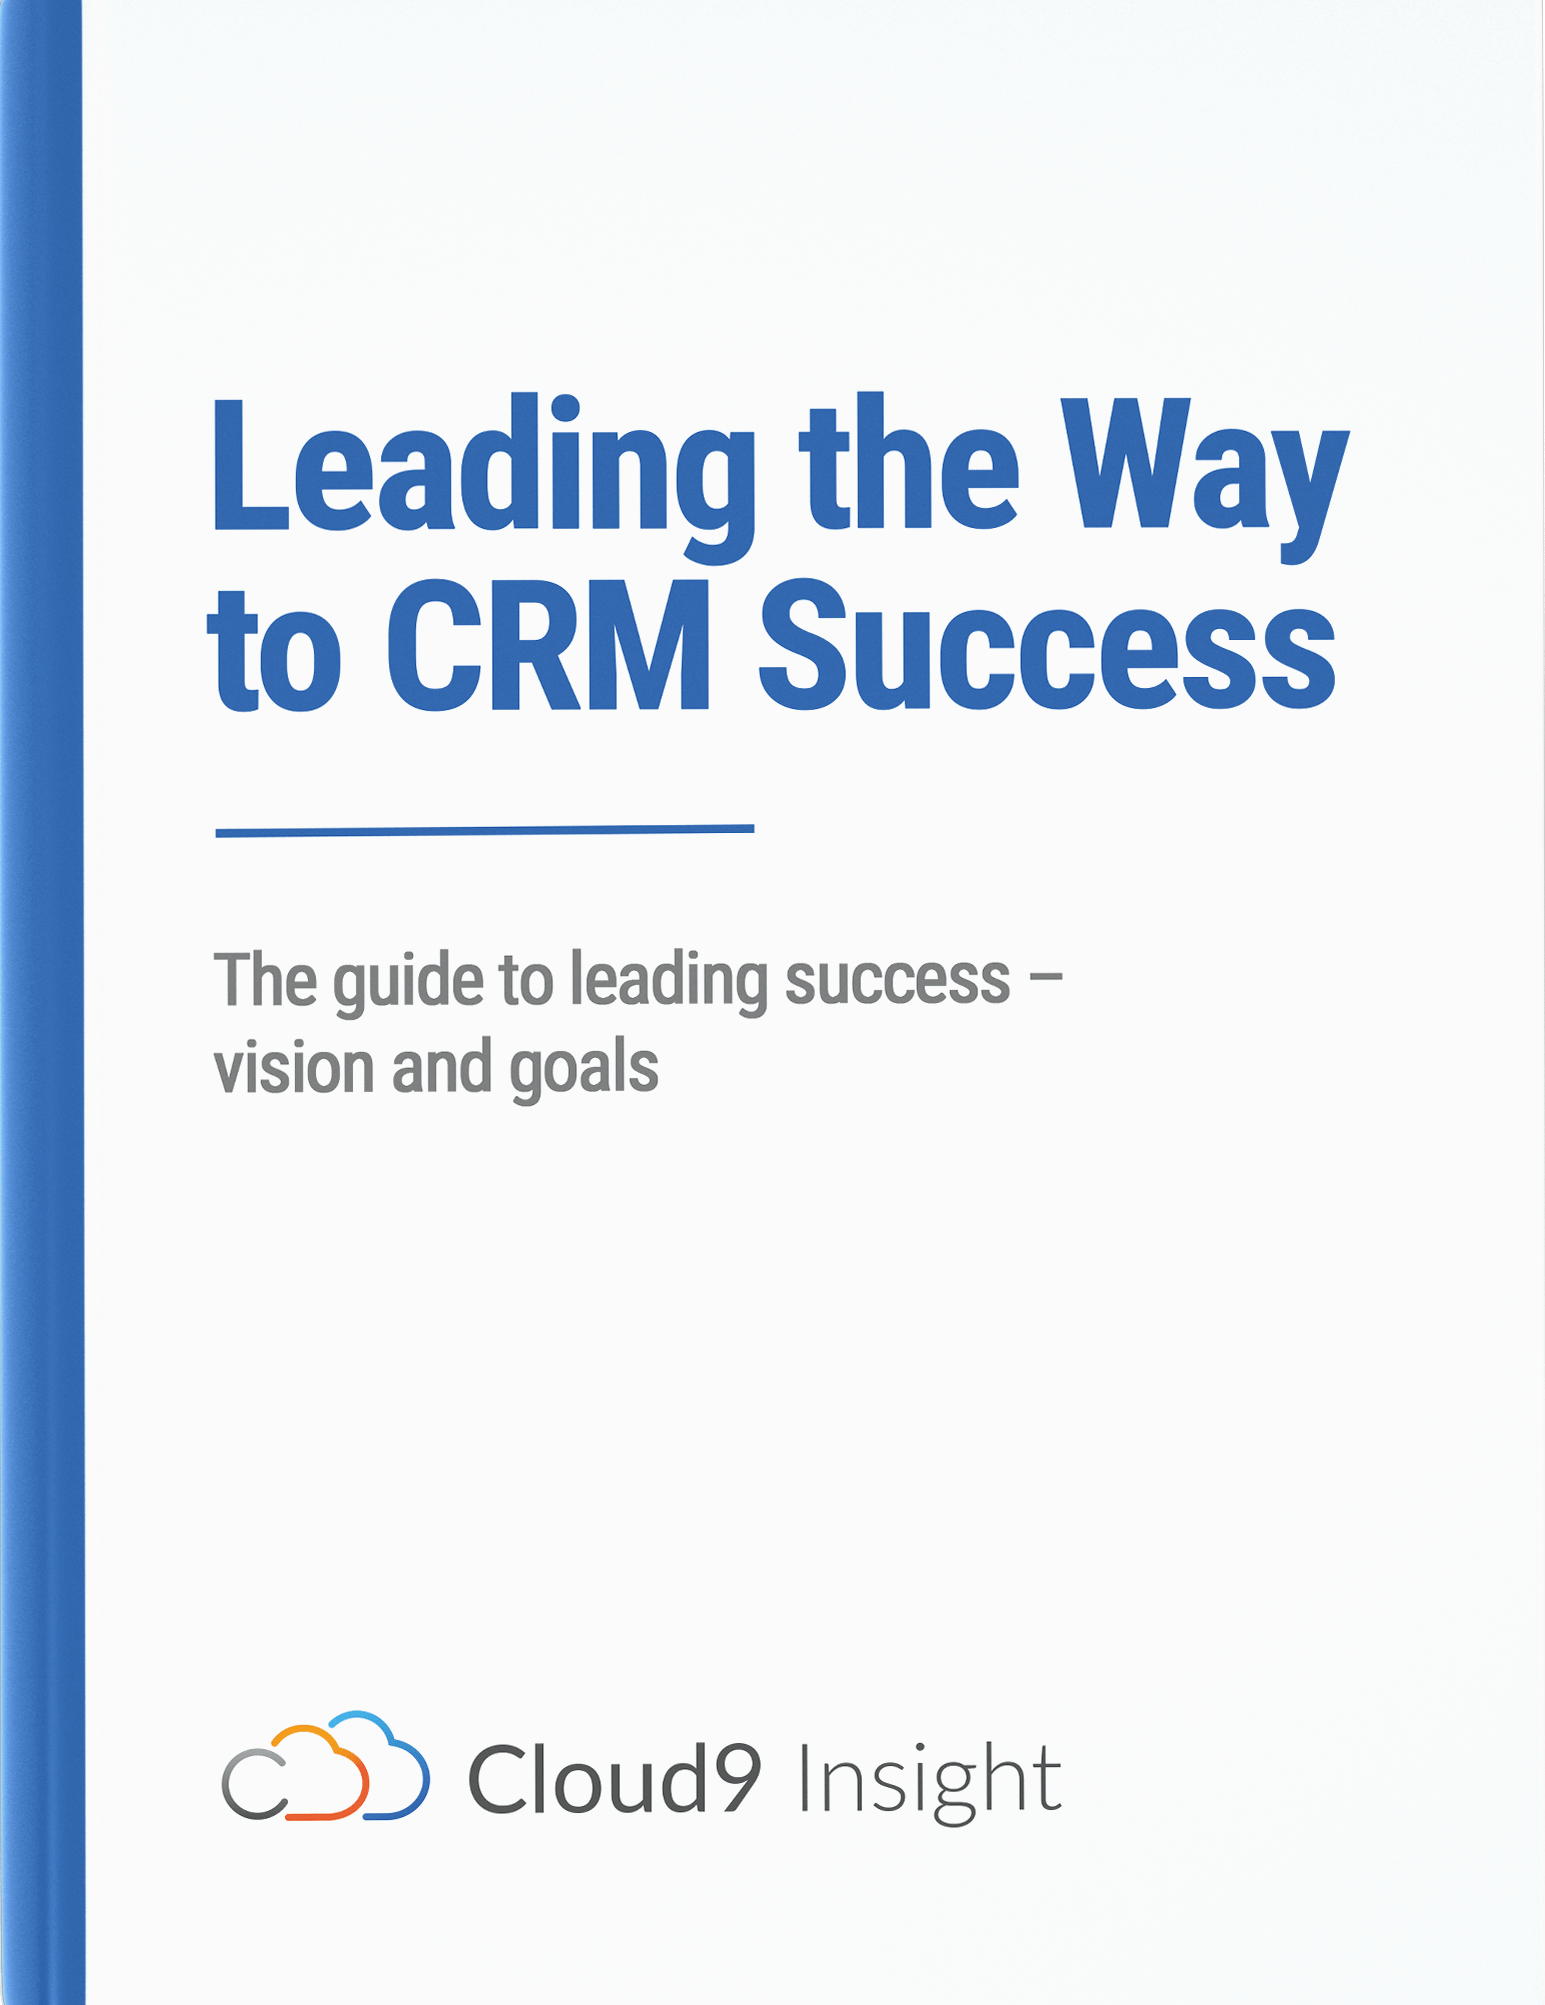 Leading-the-way-to-crm-success